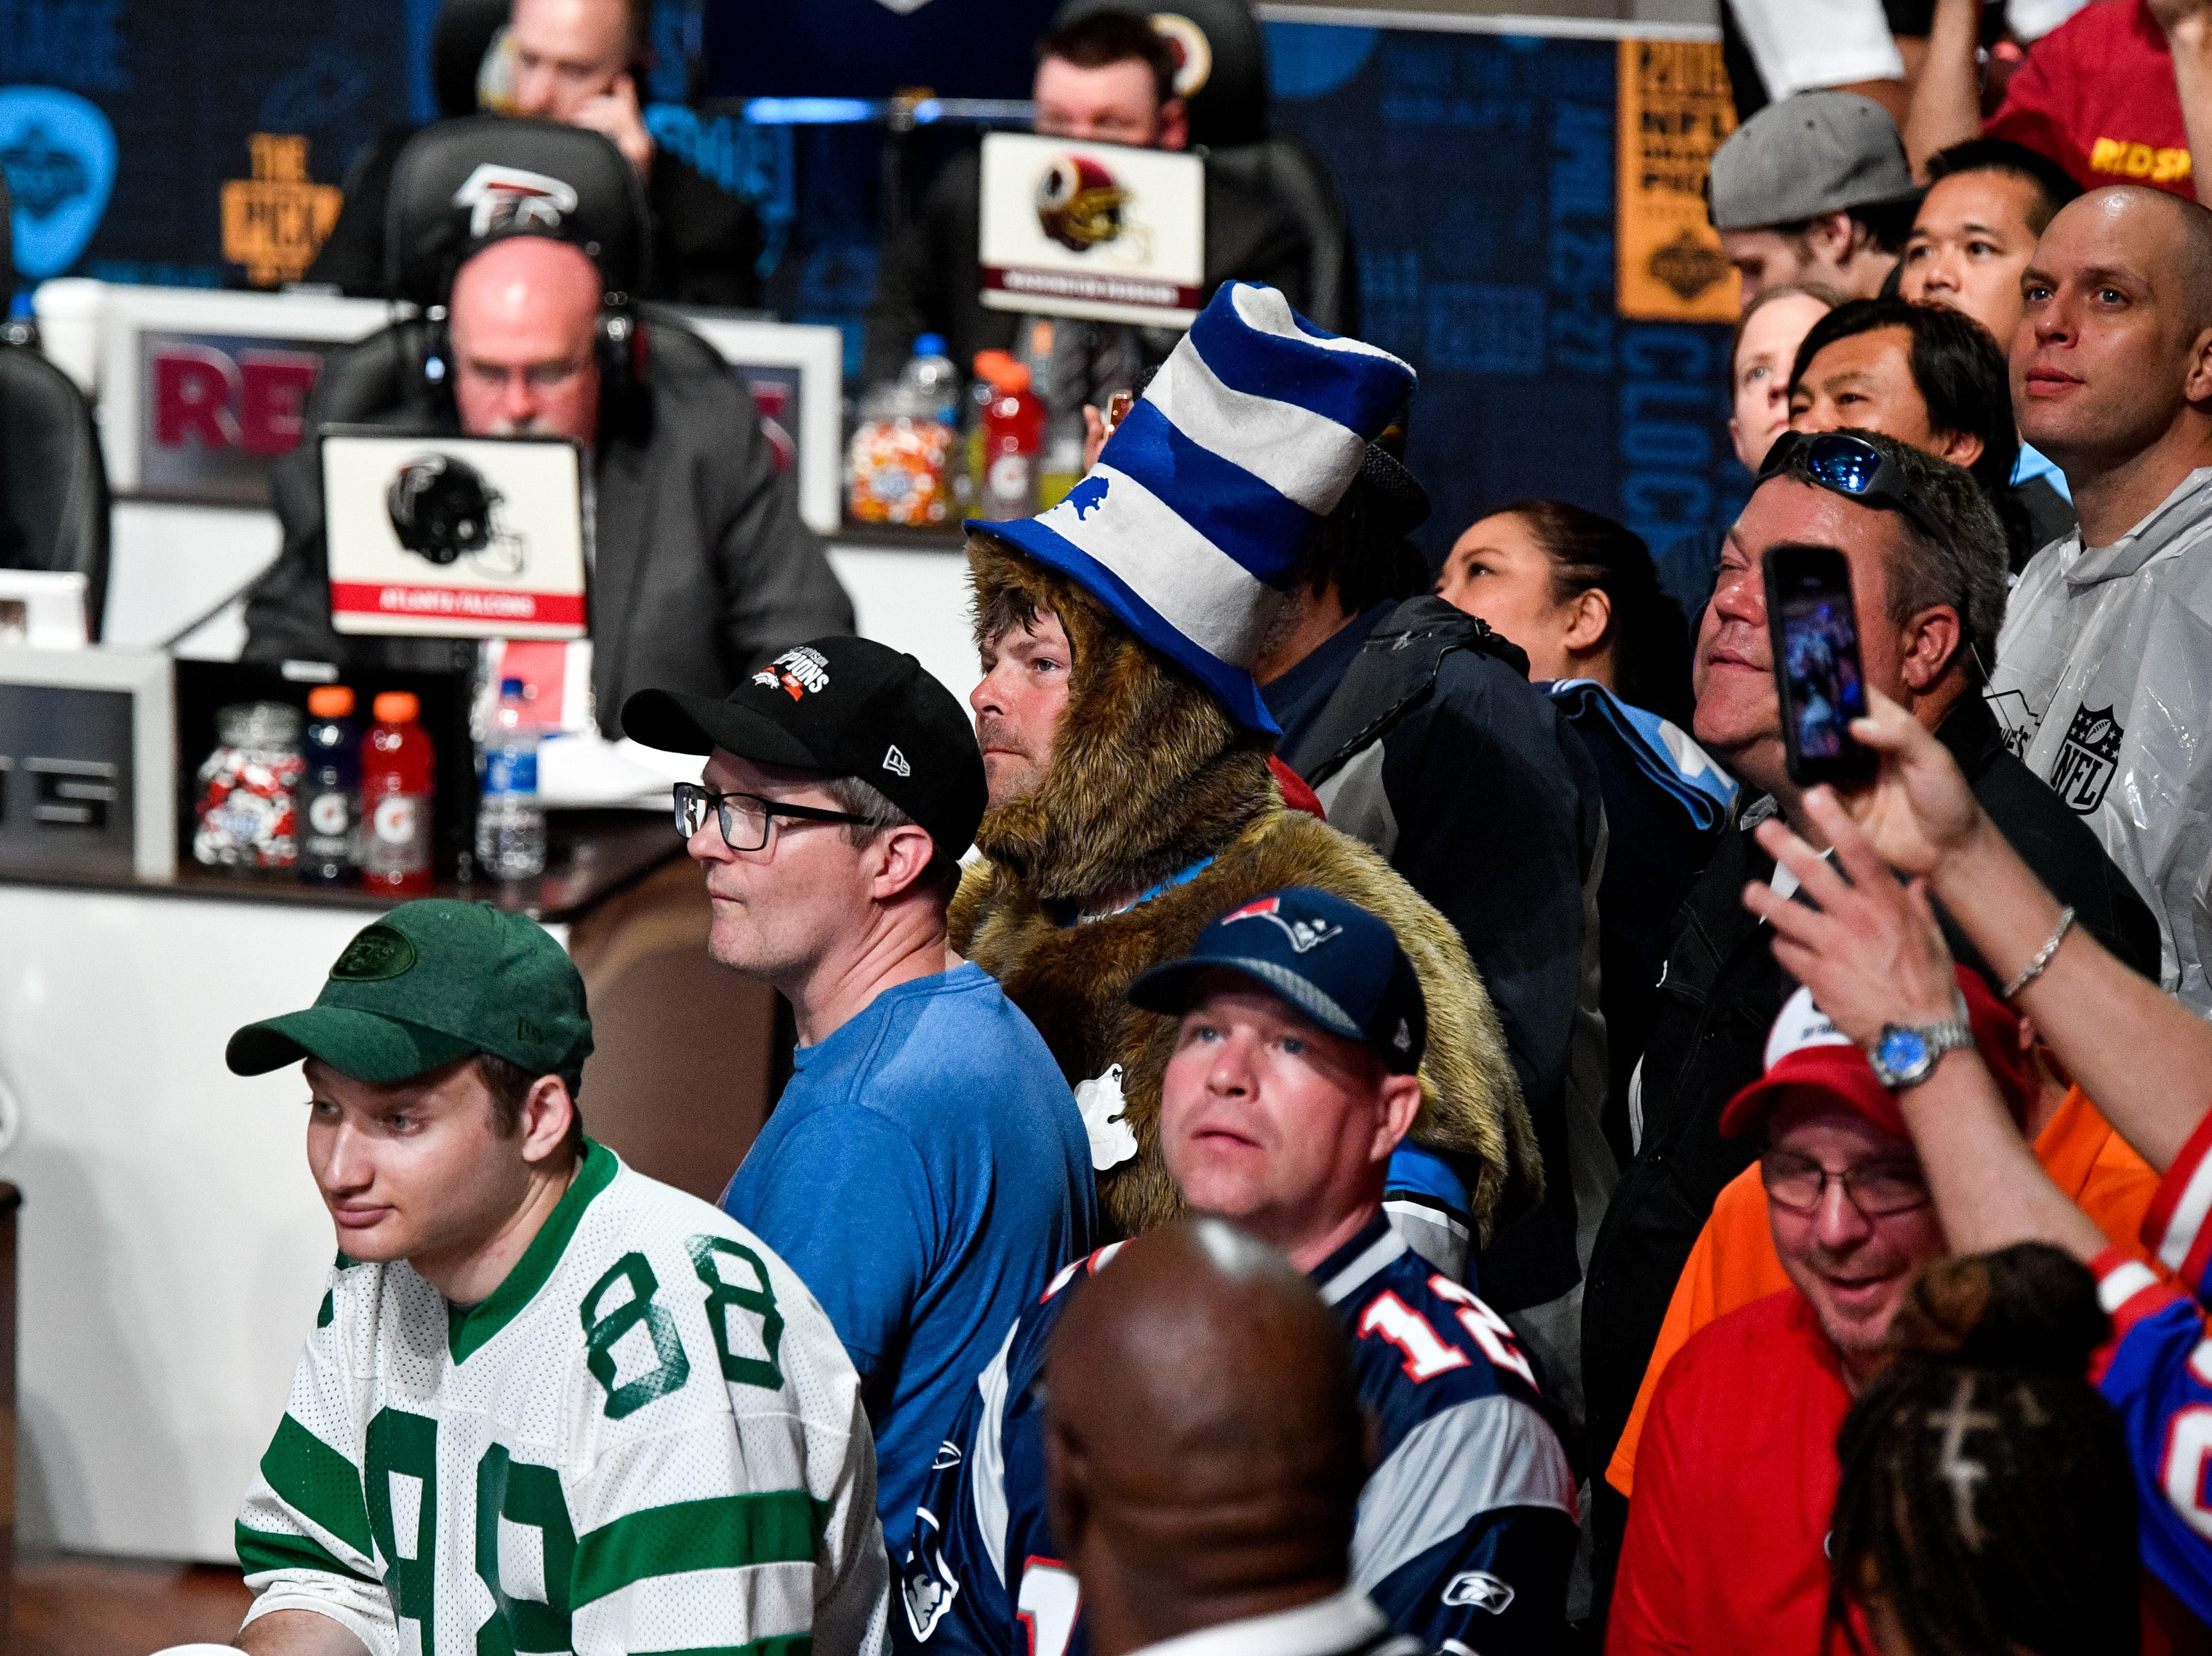 Fans watch as officials wait to make their pick in the first round of the NFL Draft at the Schermerhorn Symphony Center Thursday, April 25, 2019, in Nashville, Tenn.